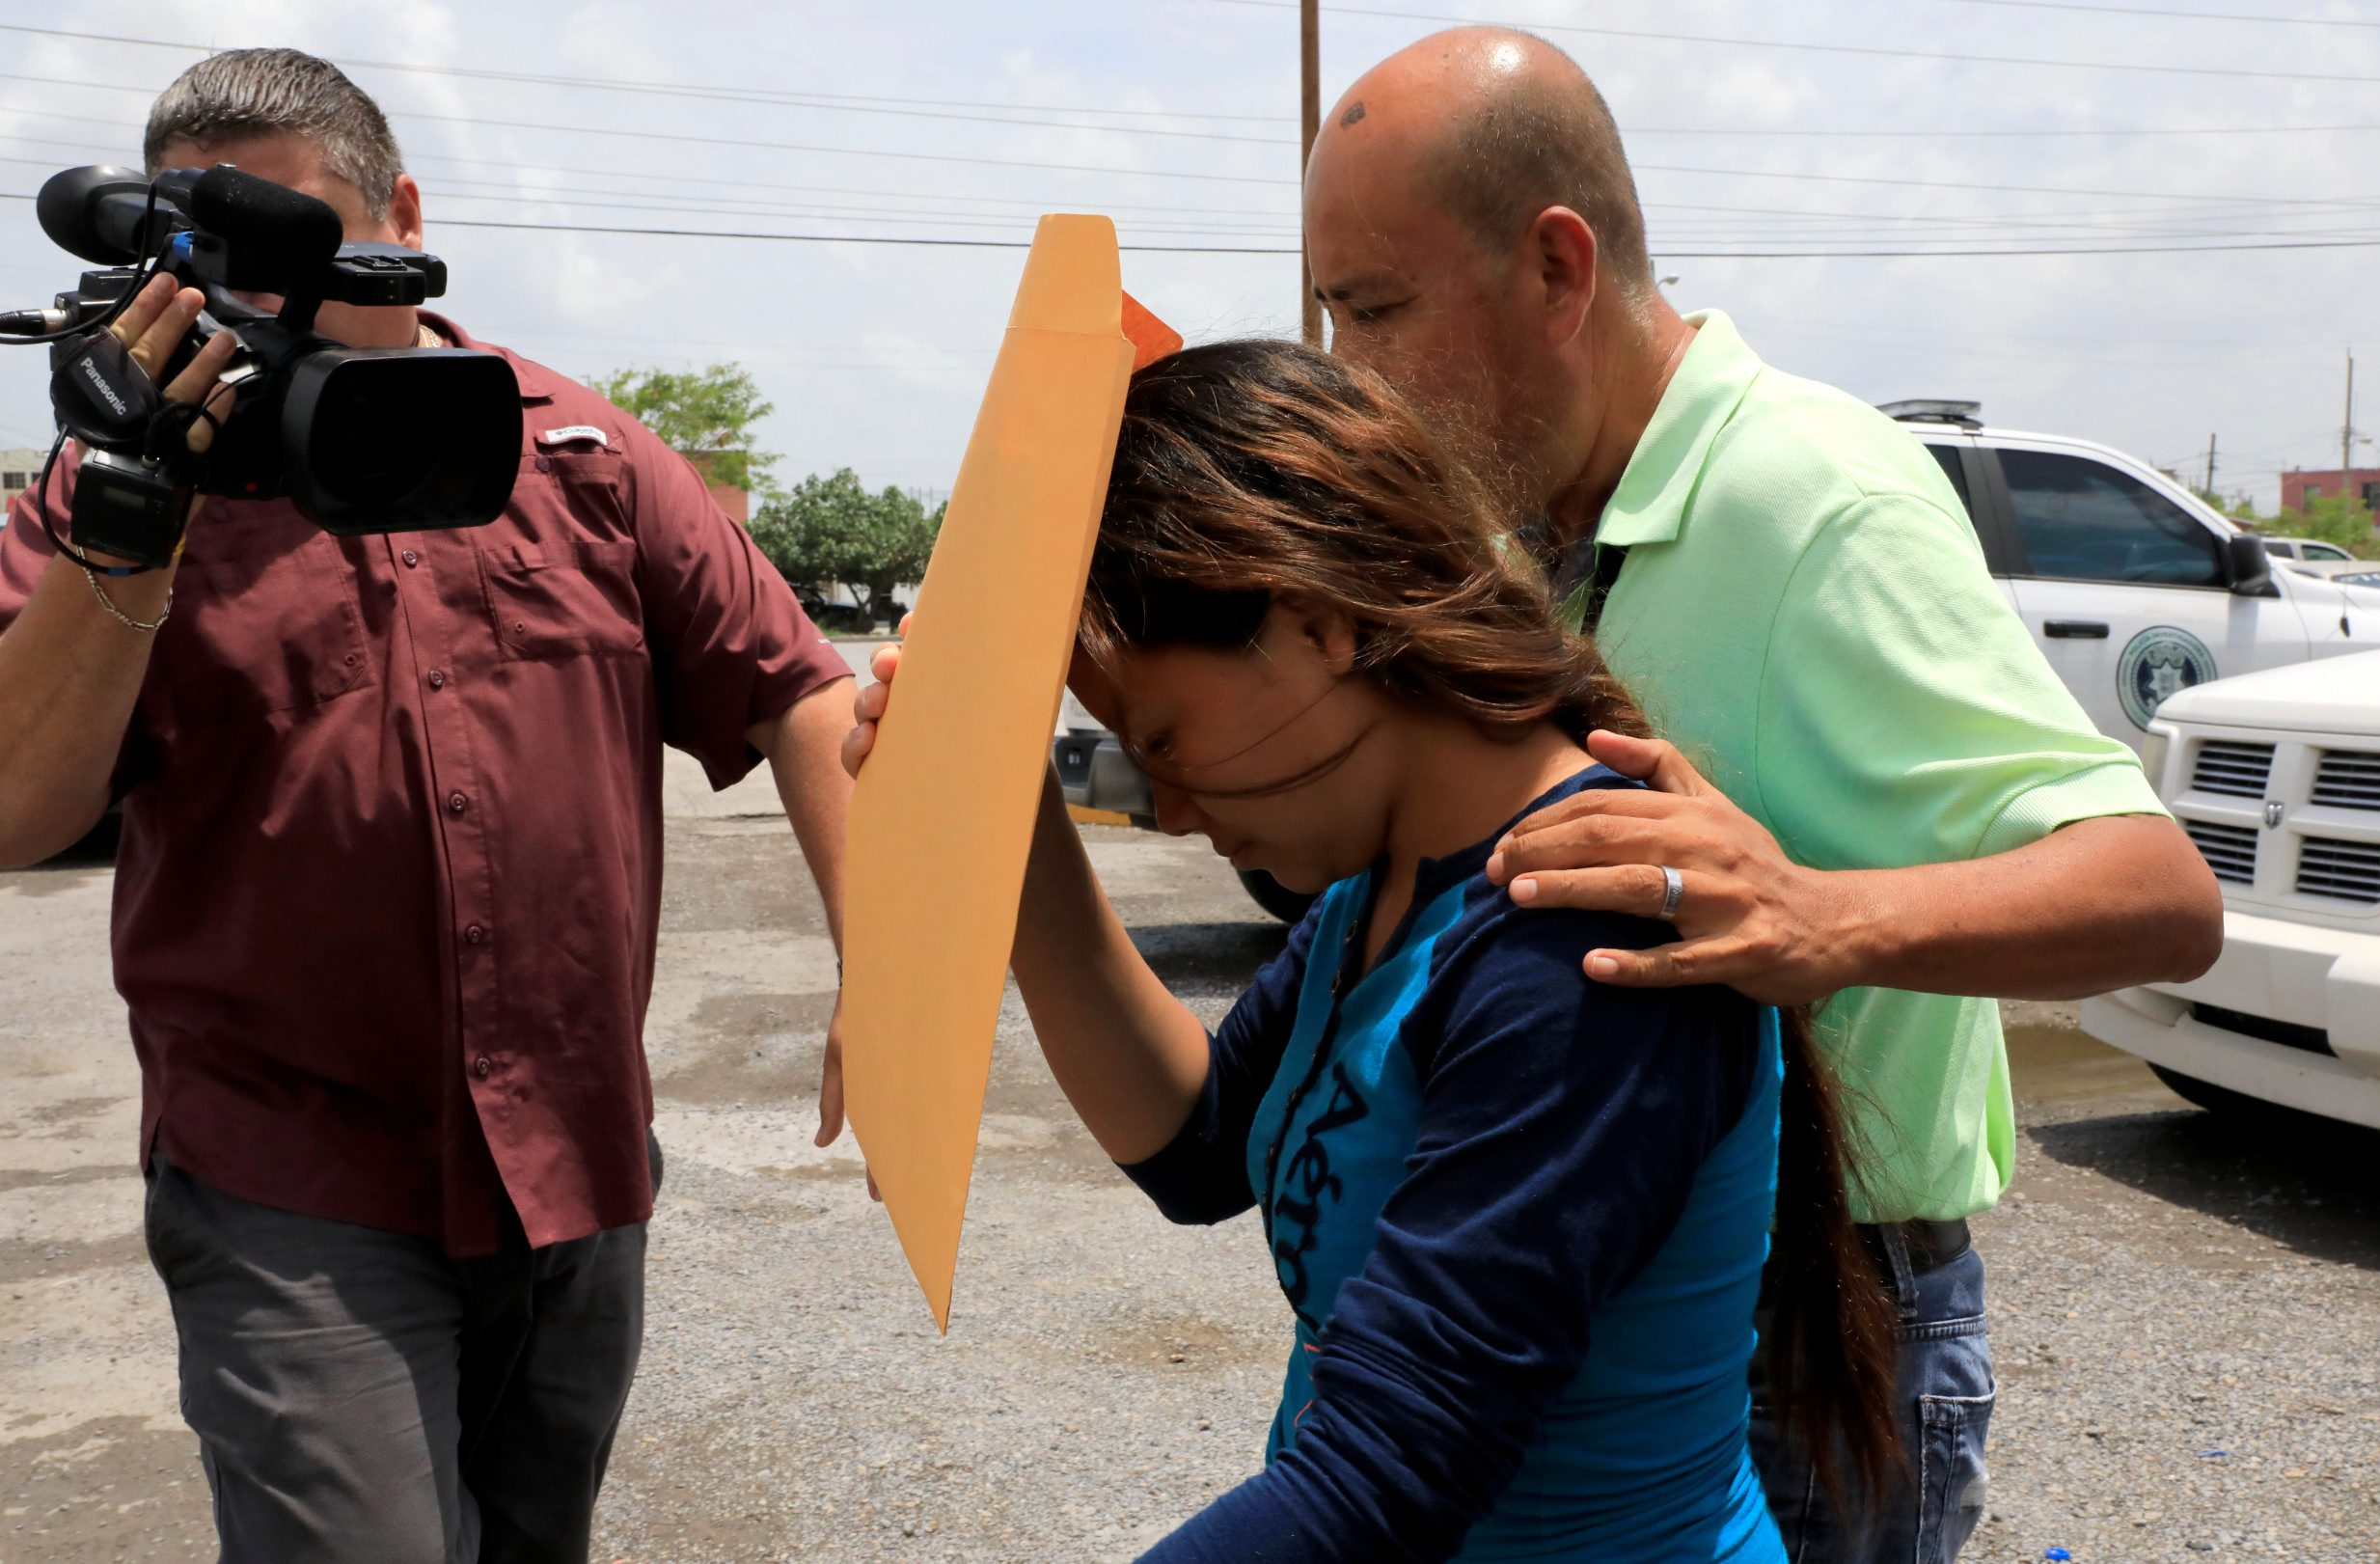 Tania Avalos, wife of Oscar Alberto Martinez Ramirez, a migrant who drowned in the Rio Grande river with his daughter Valeria during their journey to the U.S., is seen outside the morgue in Matamoros, Mexico June 26, 2019. REUTERS/Carlos Jasso